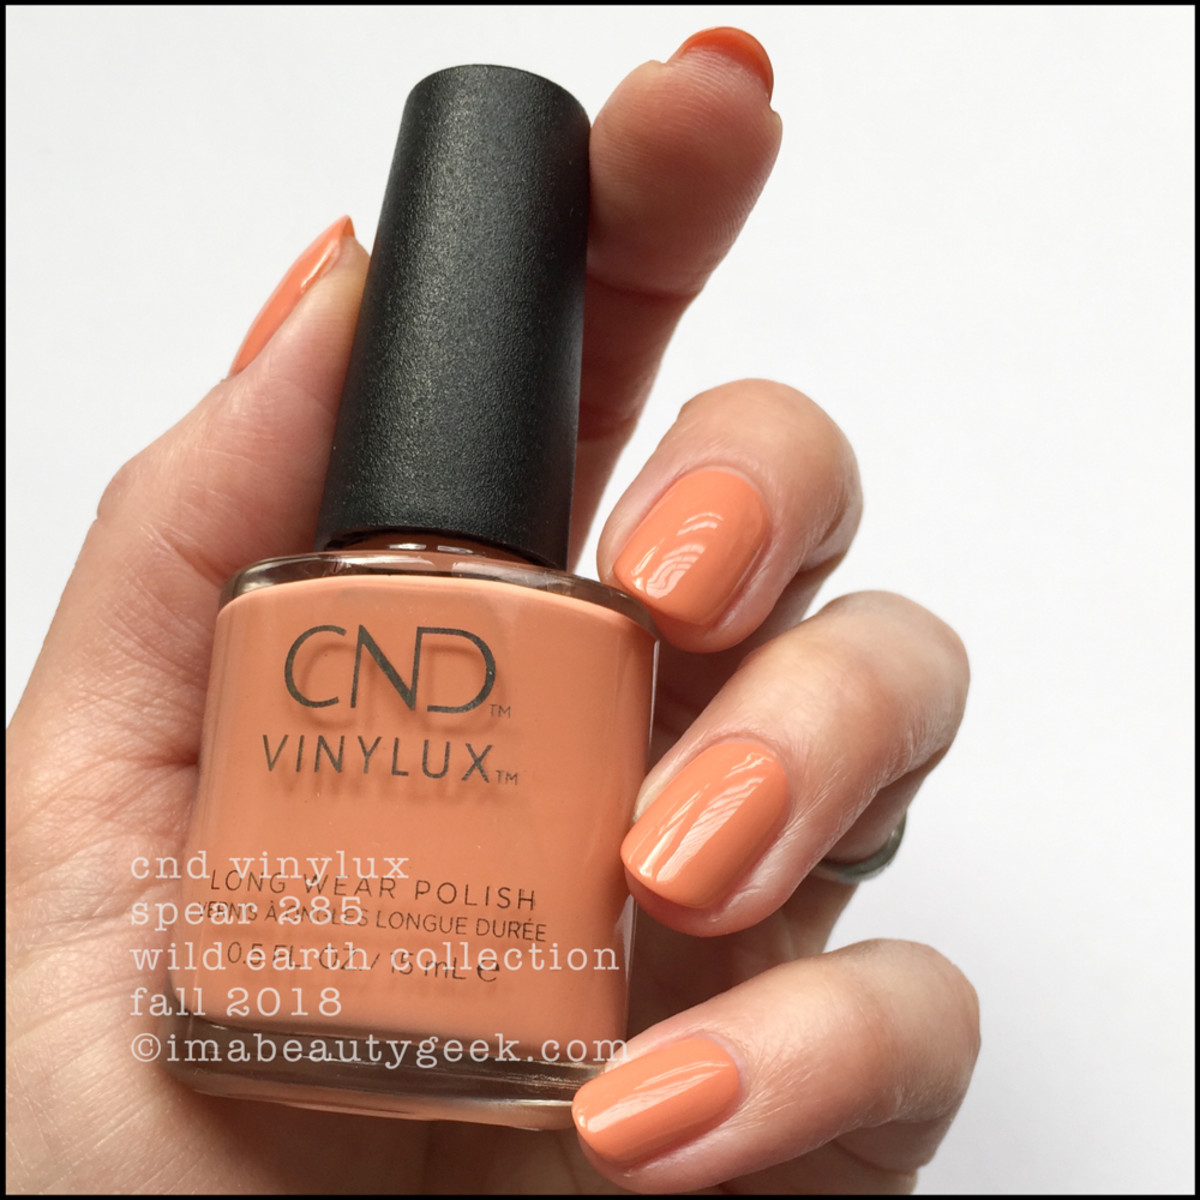 CND Vinylux Spear 285 - CND Wild Earth Fall 2018